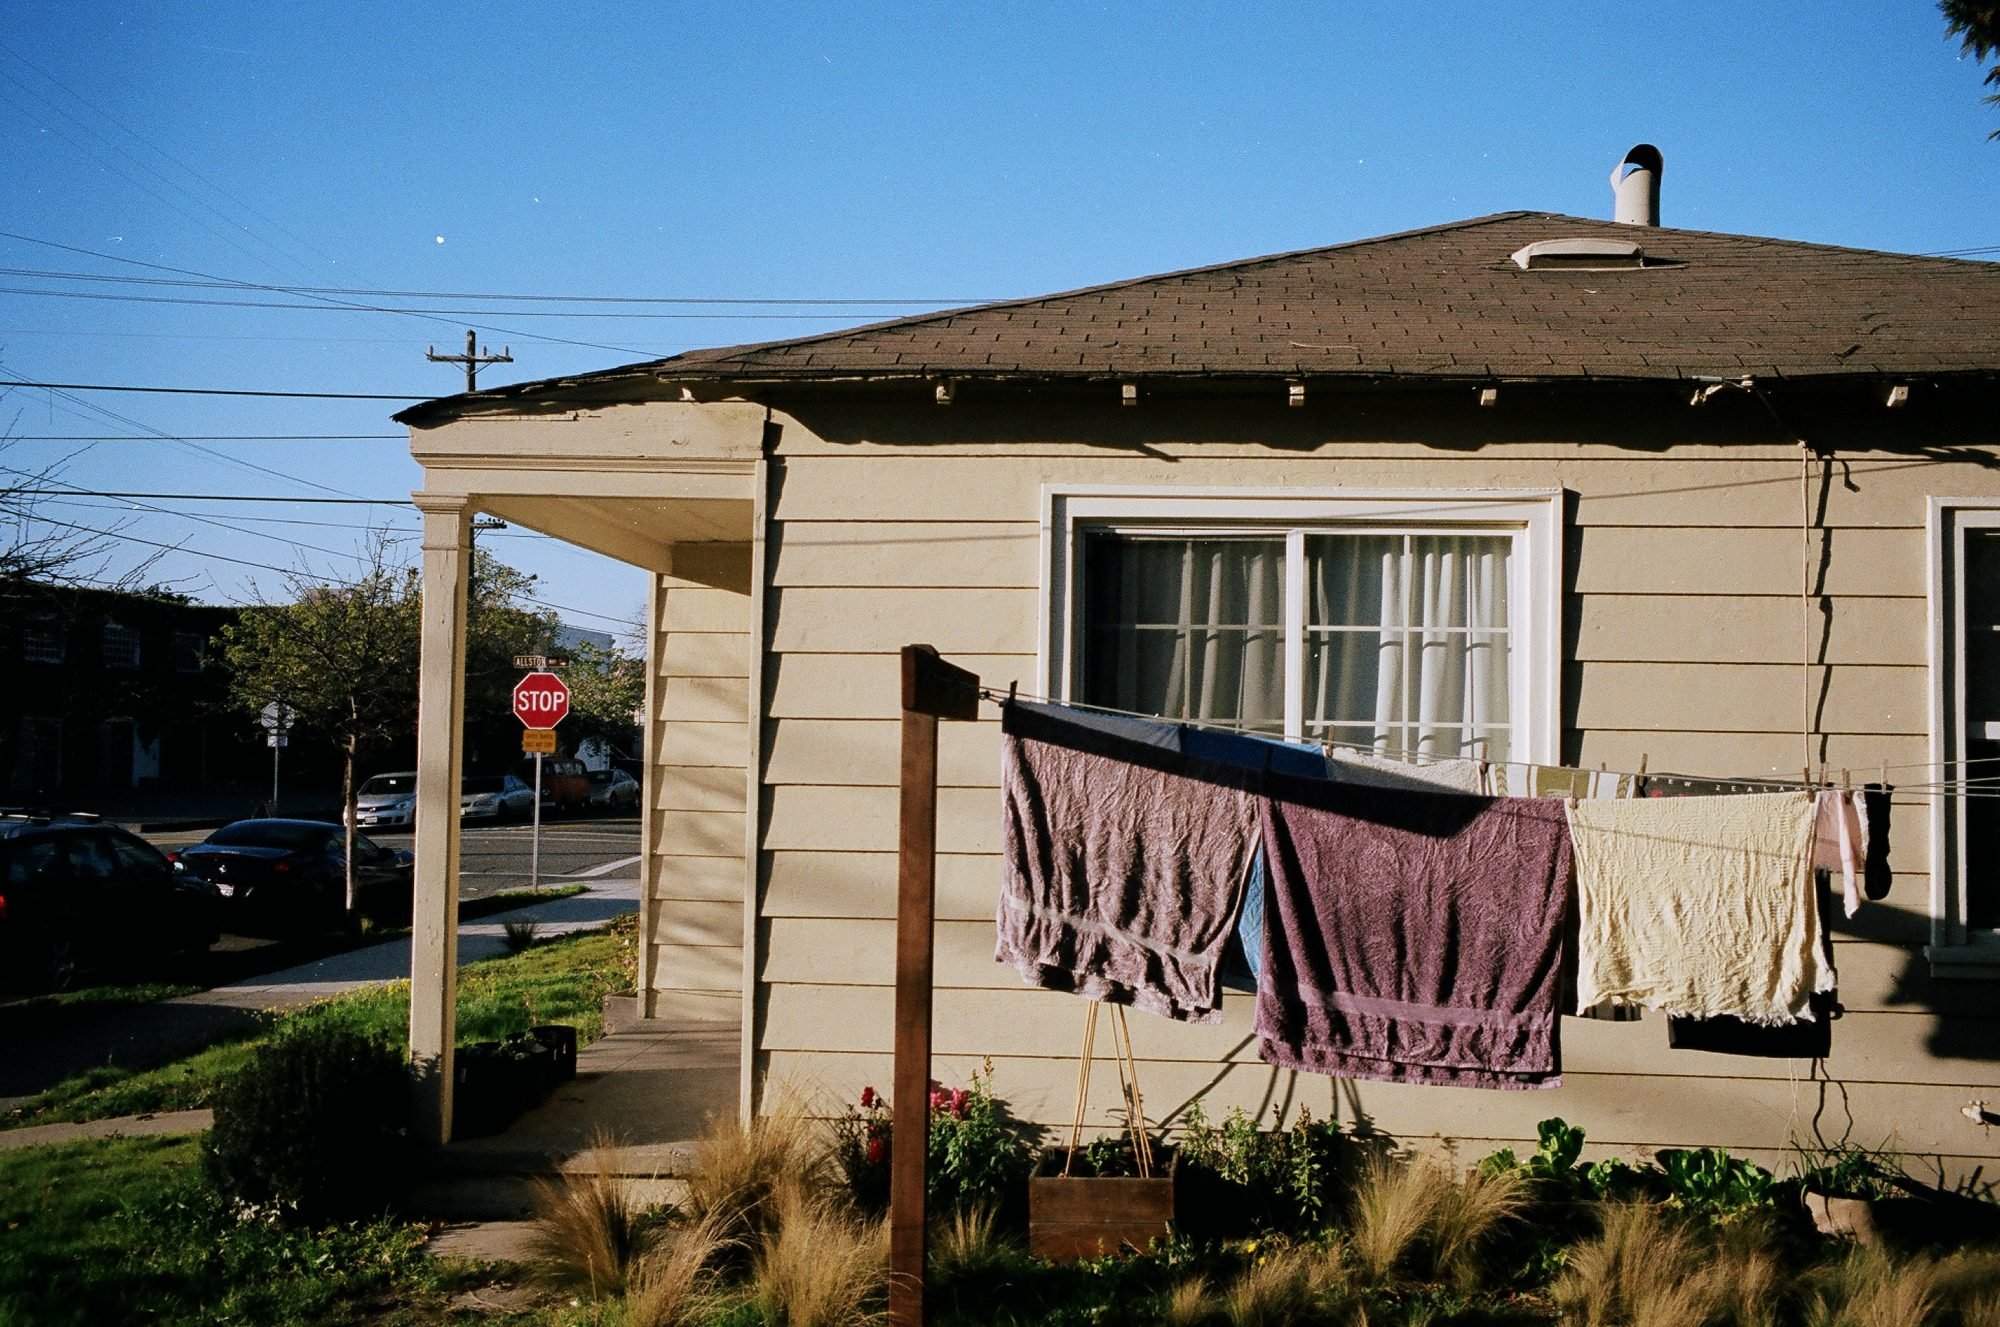 Golden hour in berkeley, with purple towels outside of house.